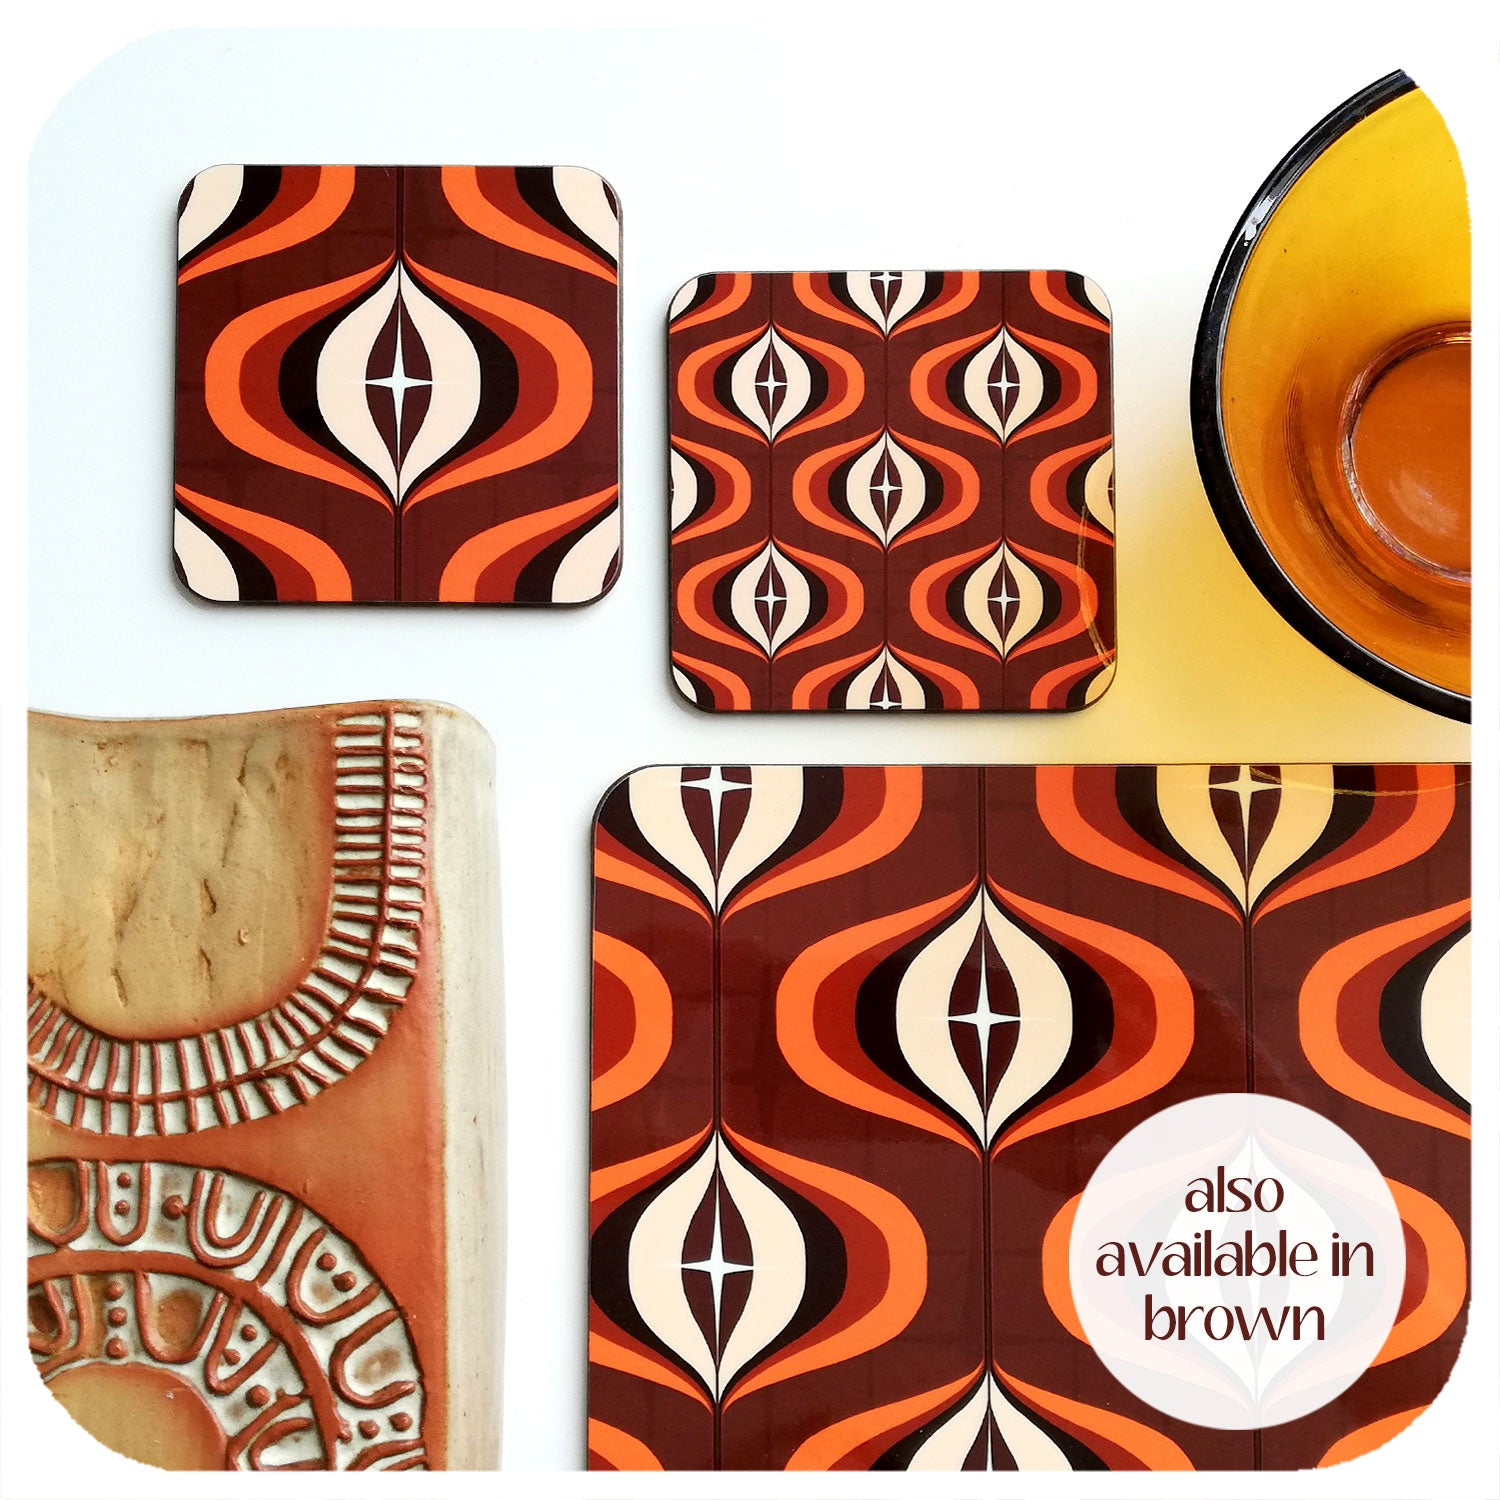 1970s Op Art Placemats & coasters in brown | The Inkabilly Emporium